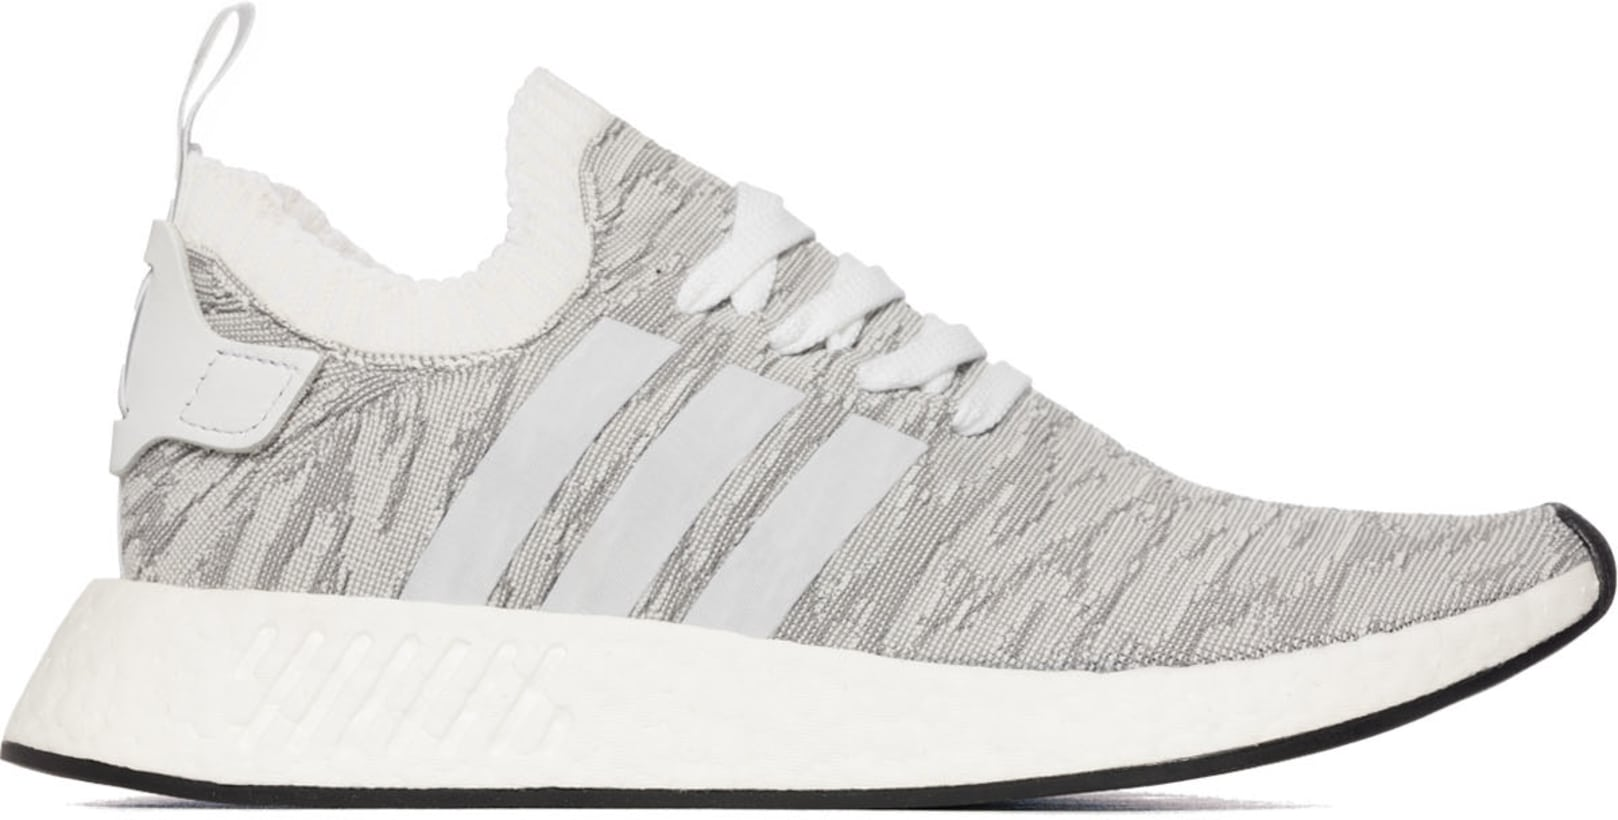 hot sale online 840b0 3b409 adidas Originals. NMD R2 Primeknit - Grey Footwear White Core Black Future  Harvest